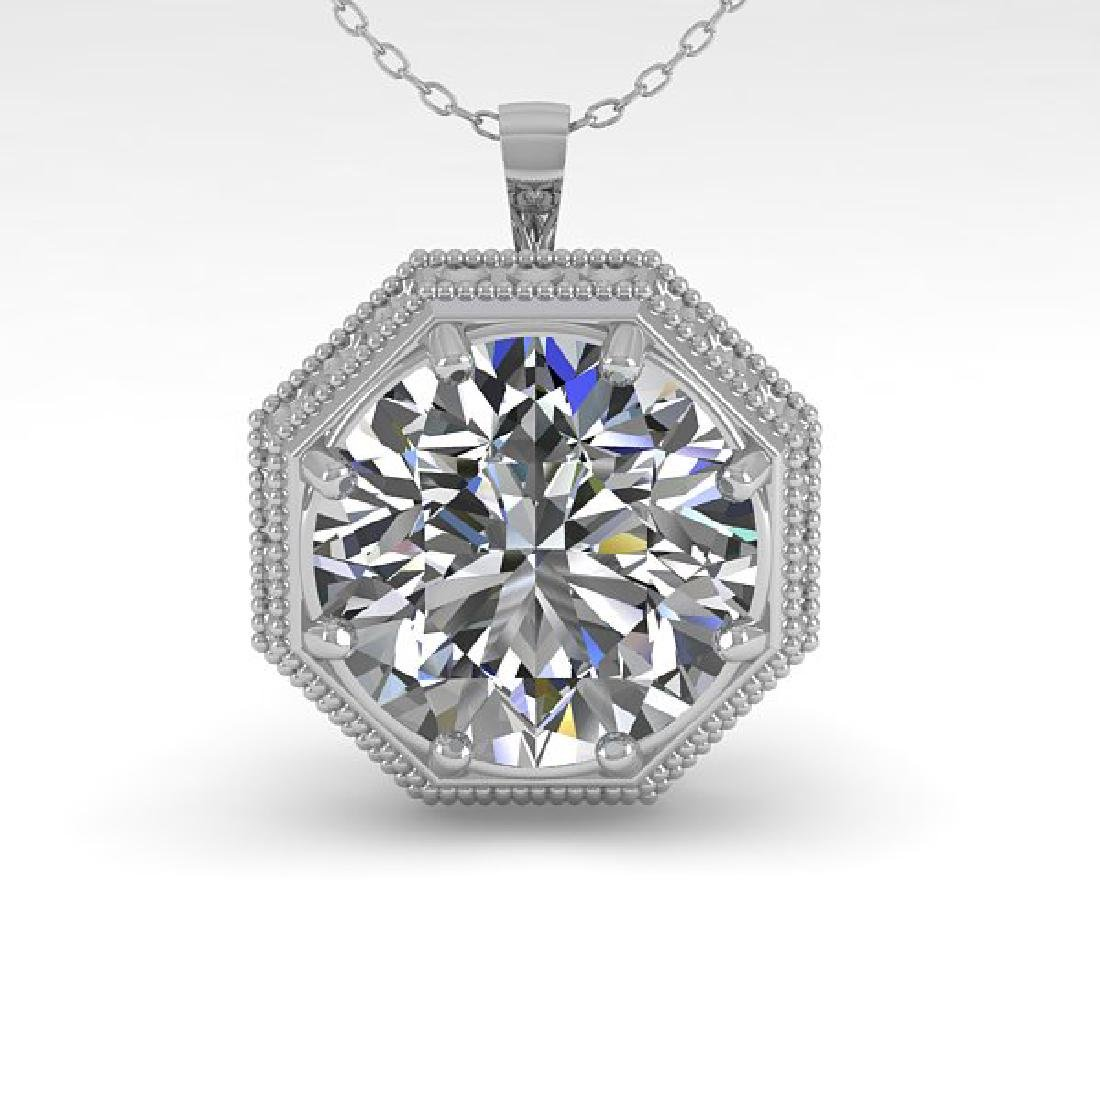 1.50 CTW VS/SI Diamond Solitaire Necklace 14K White - 2